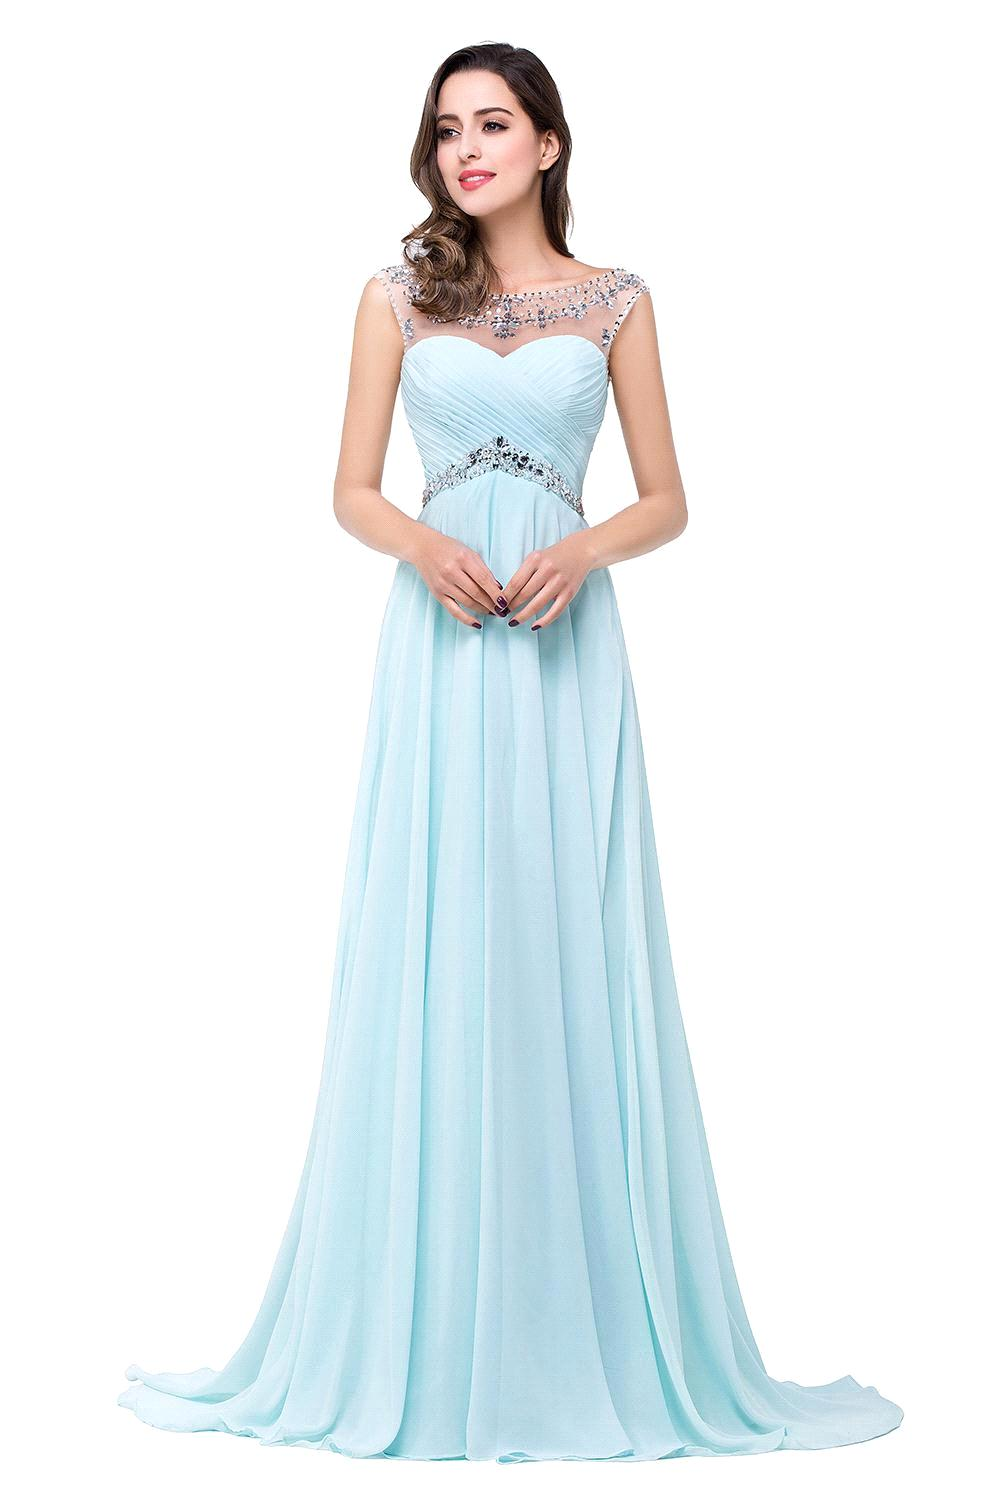 Magnificent Cheap Black Prom Dresses Under 50 Ensign - All Wedding ...